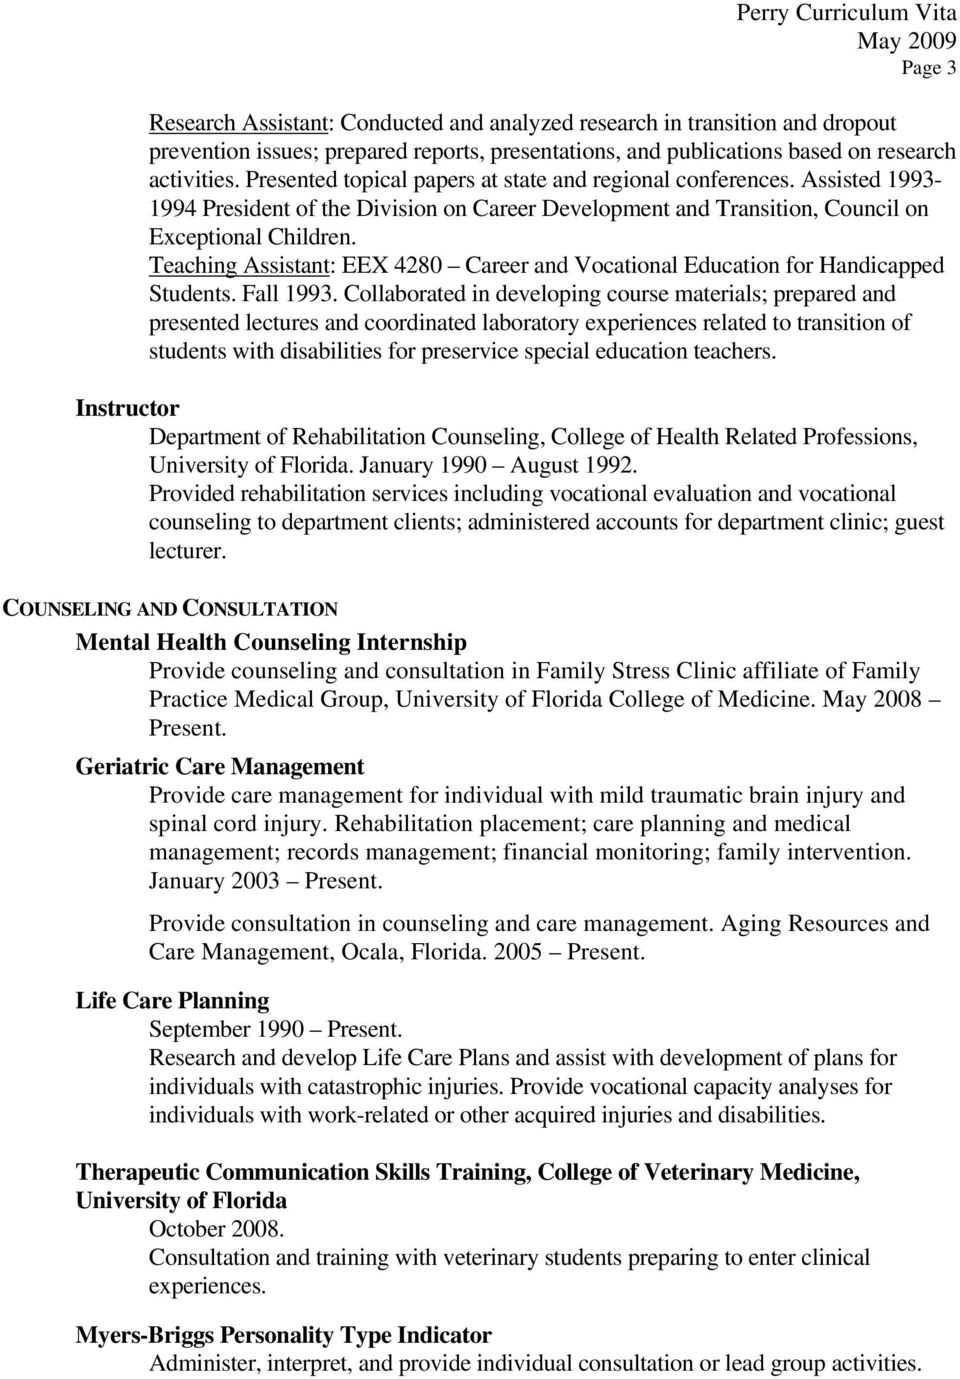 Teaching Assistant: EEX 4280 Career and Vocational Education for Handicapped Students. Fall 1993.